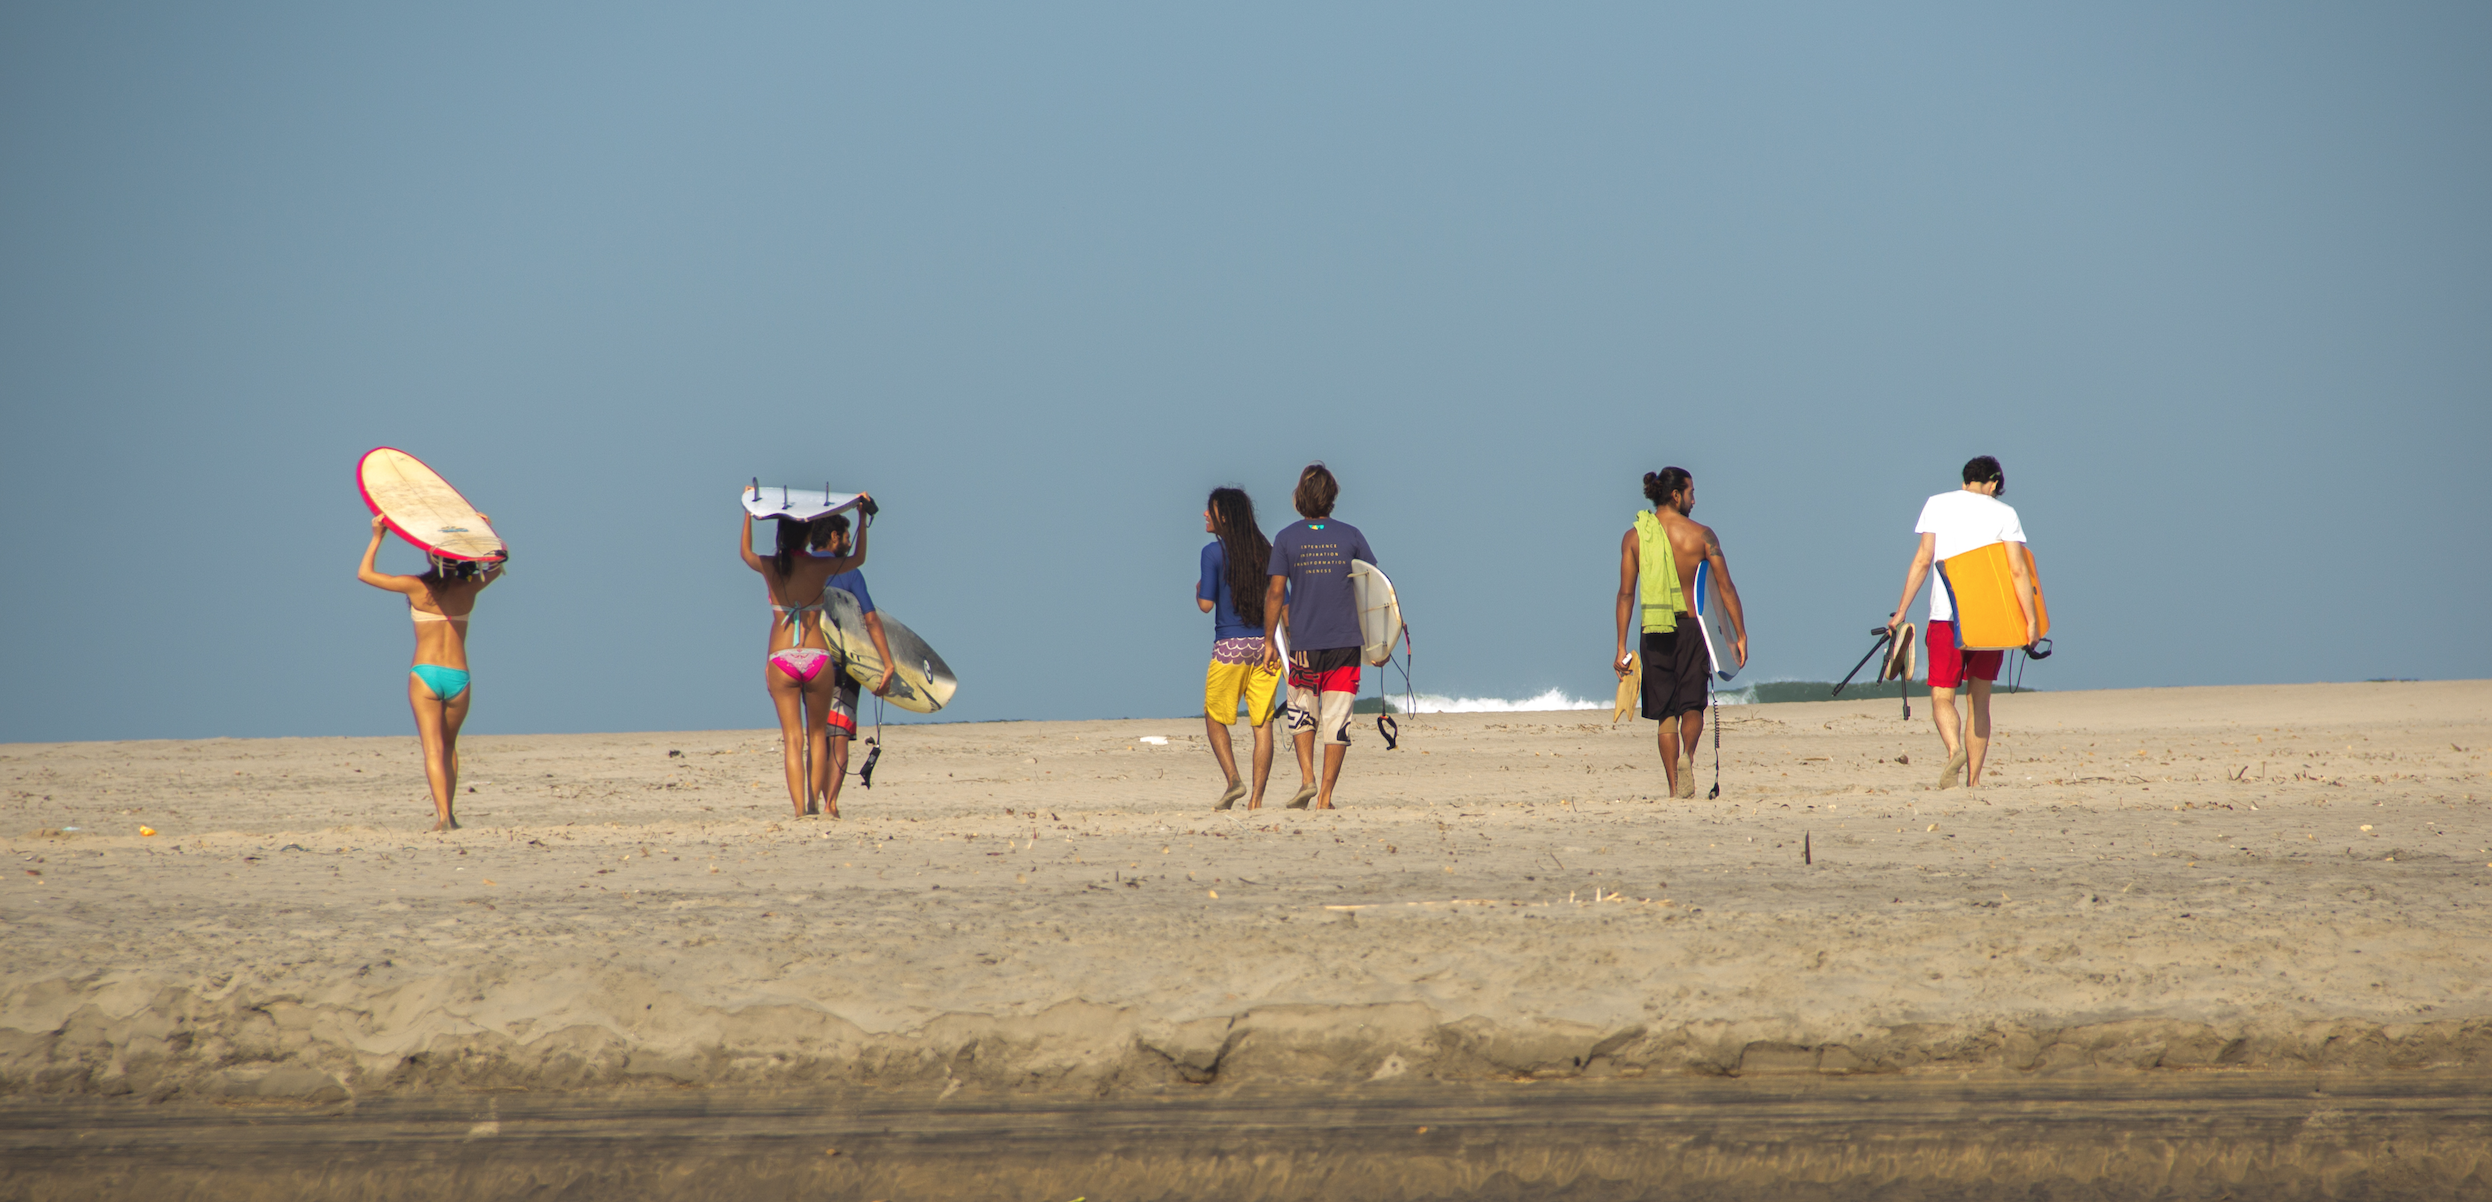 A Tribe Surf Session in Goa